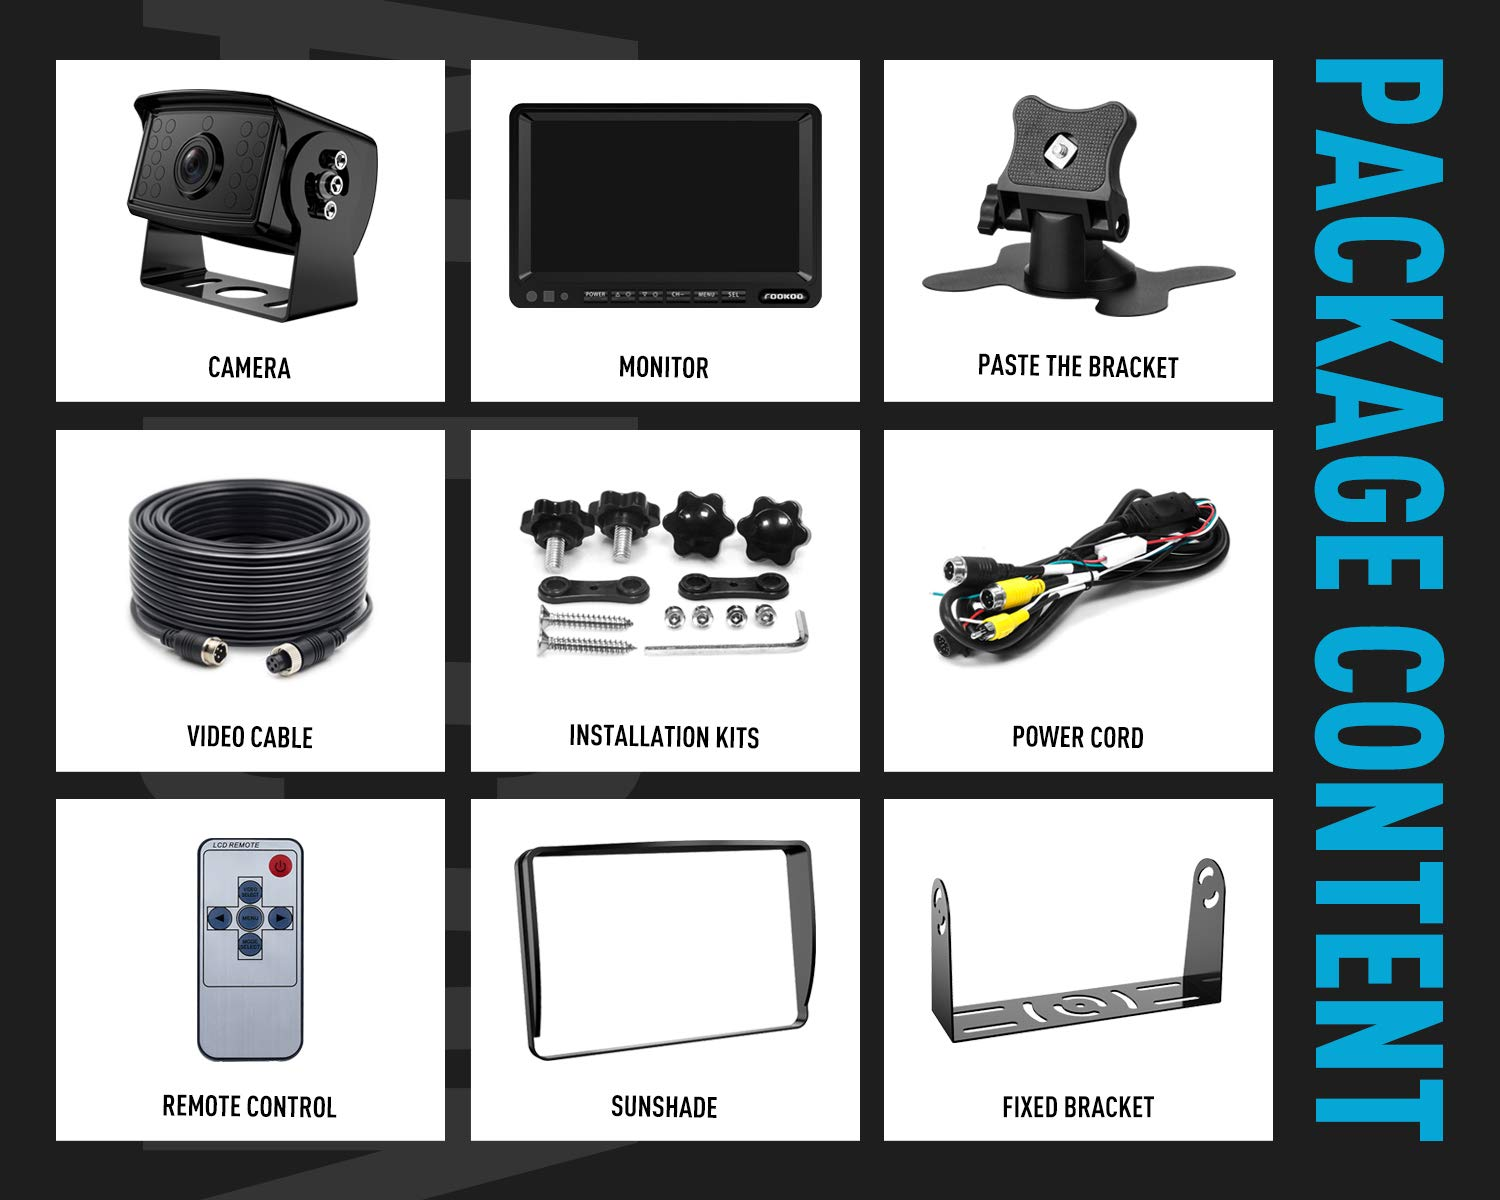 100/% Not Wash Up,Truck//Semi-Trailer//Box Truck//RV Fookoo Ⅱ HD Backup Camera System Kit,71080P Reversing Monitor+IP69 Waterproof Rear View Camera,Sharp CCD Chip FHD1-Wired